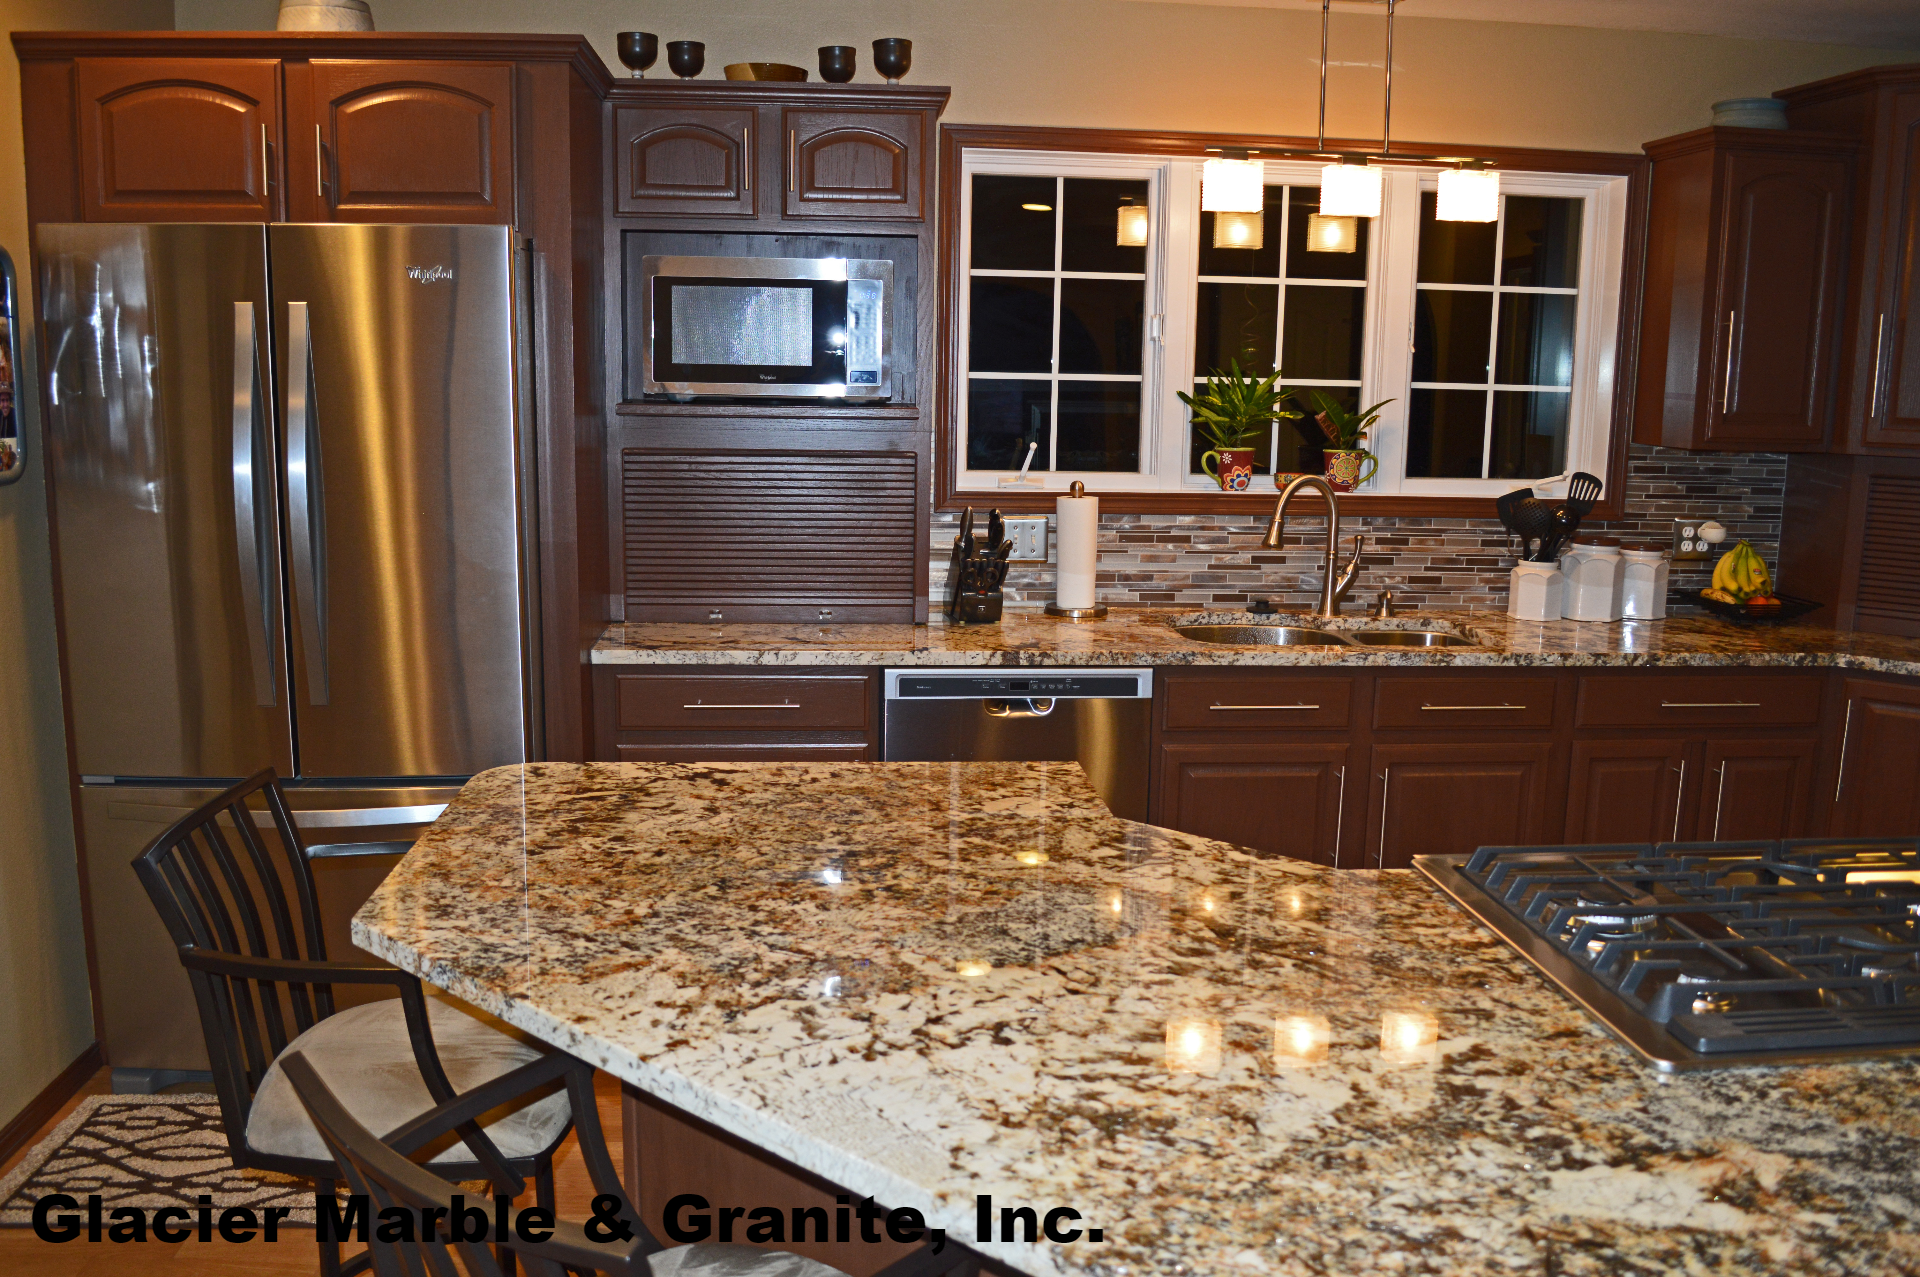 Tiger Polished Kitchen